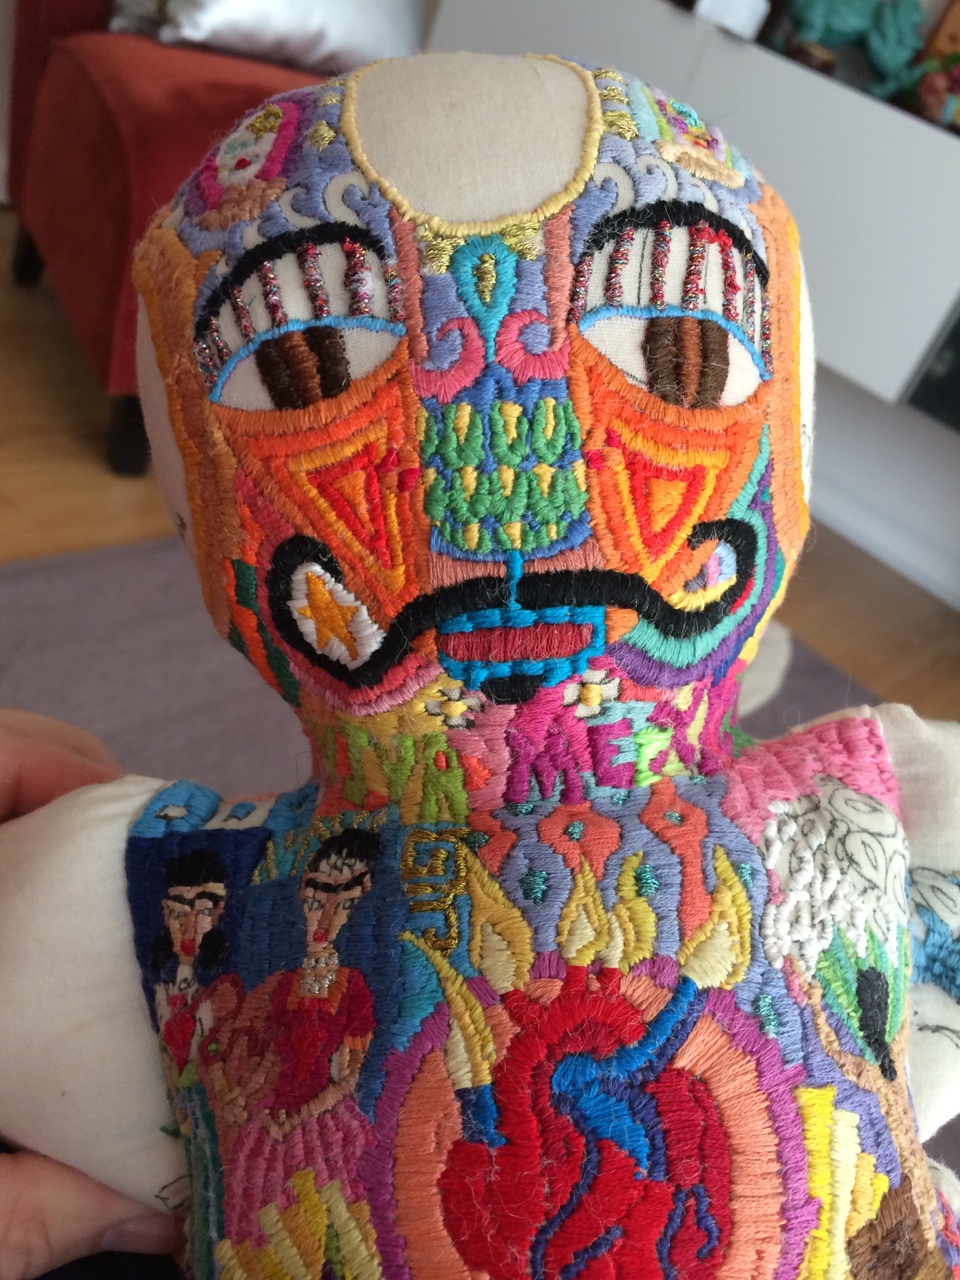 Embroidered Art Dolls From Recycled Materials